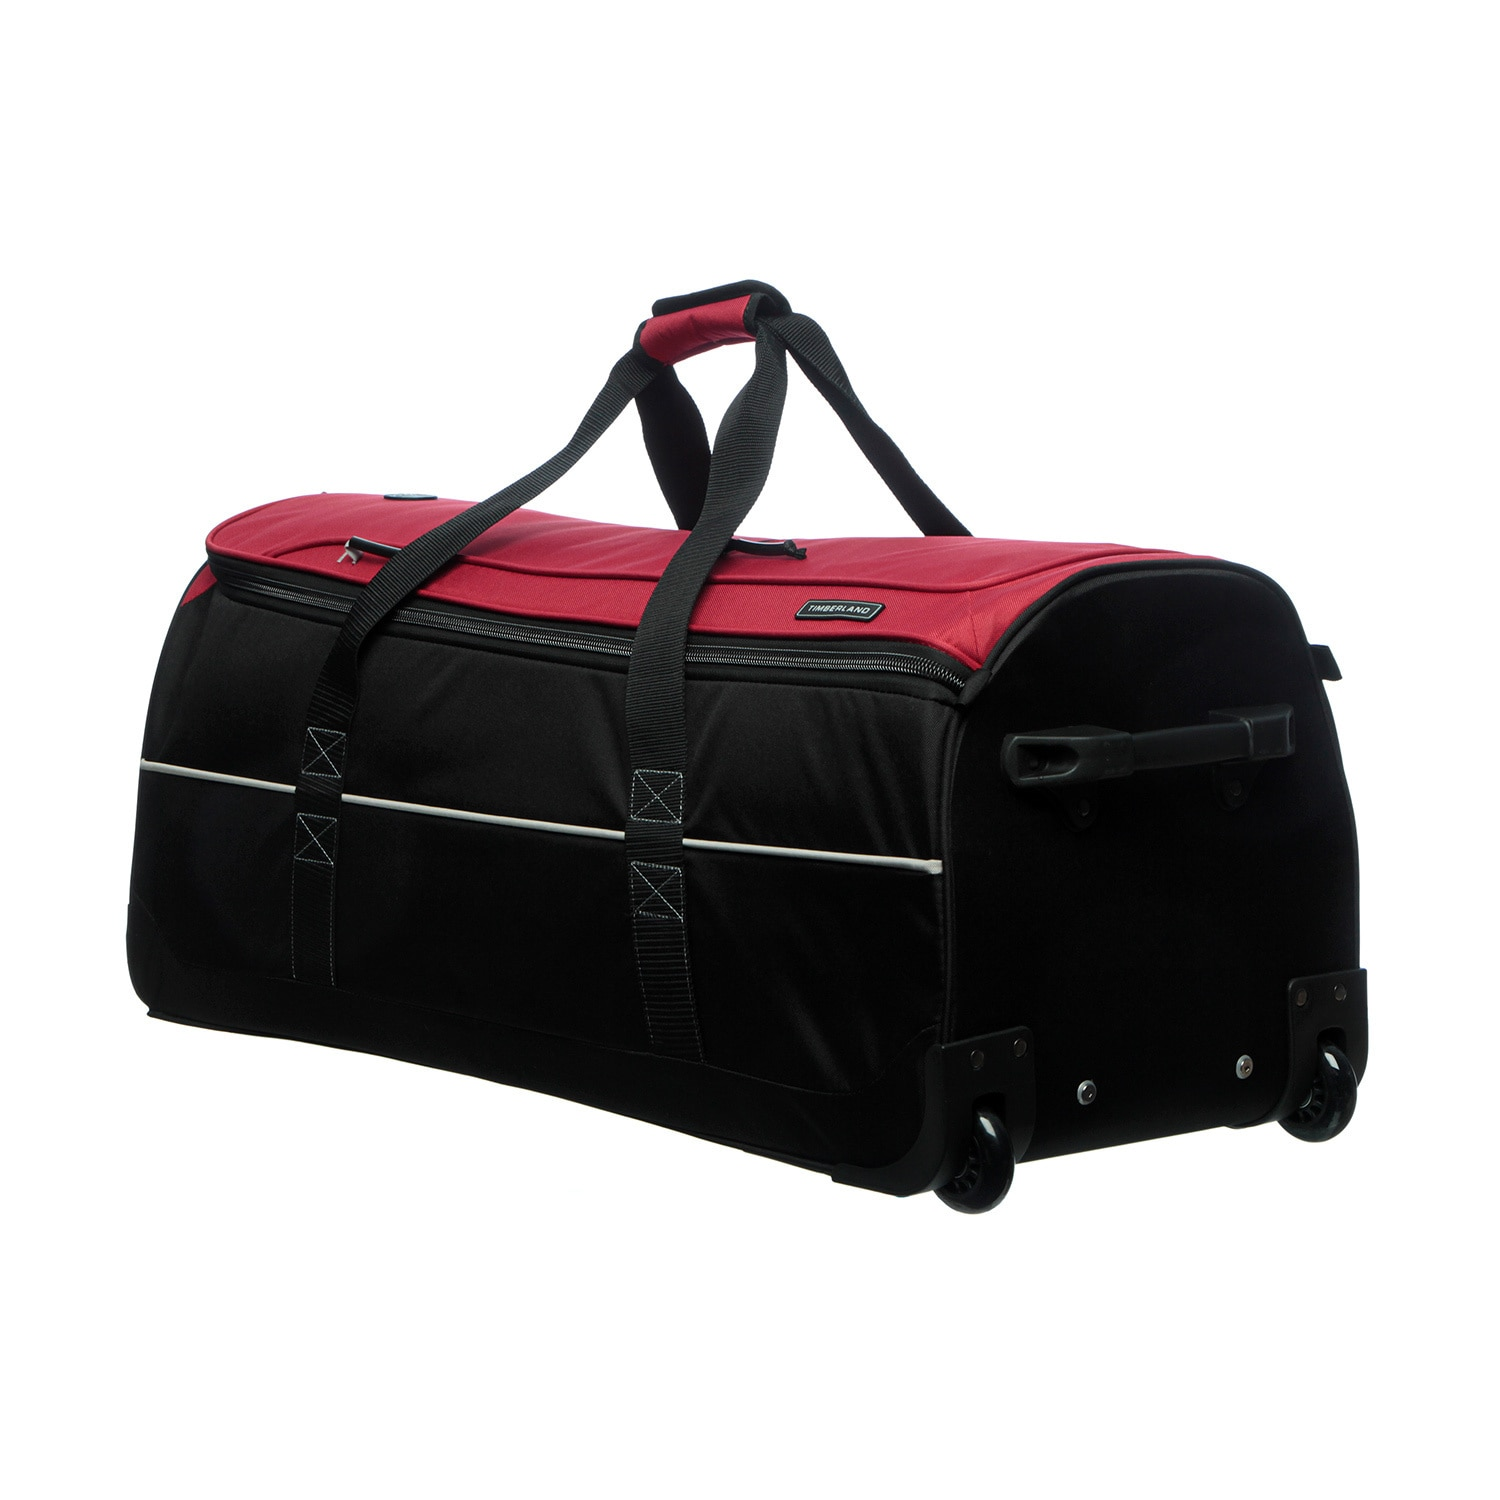 837e8b8b44 Shop Timberland 'Claremont' 32-inch Wheeled Upright Duffel Bag - Free  Shipping Today - Overstock - 7731970